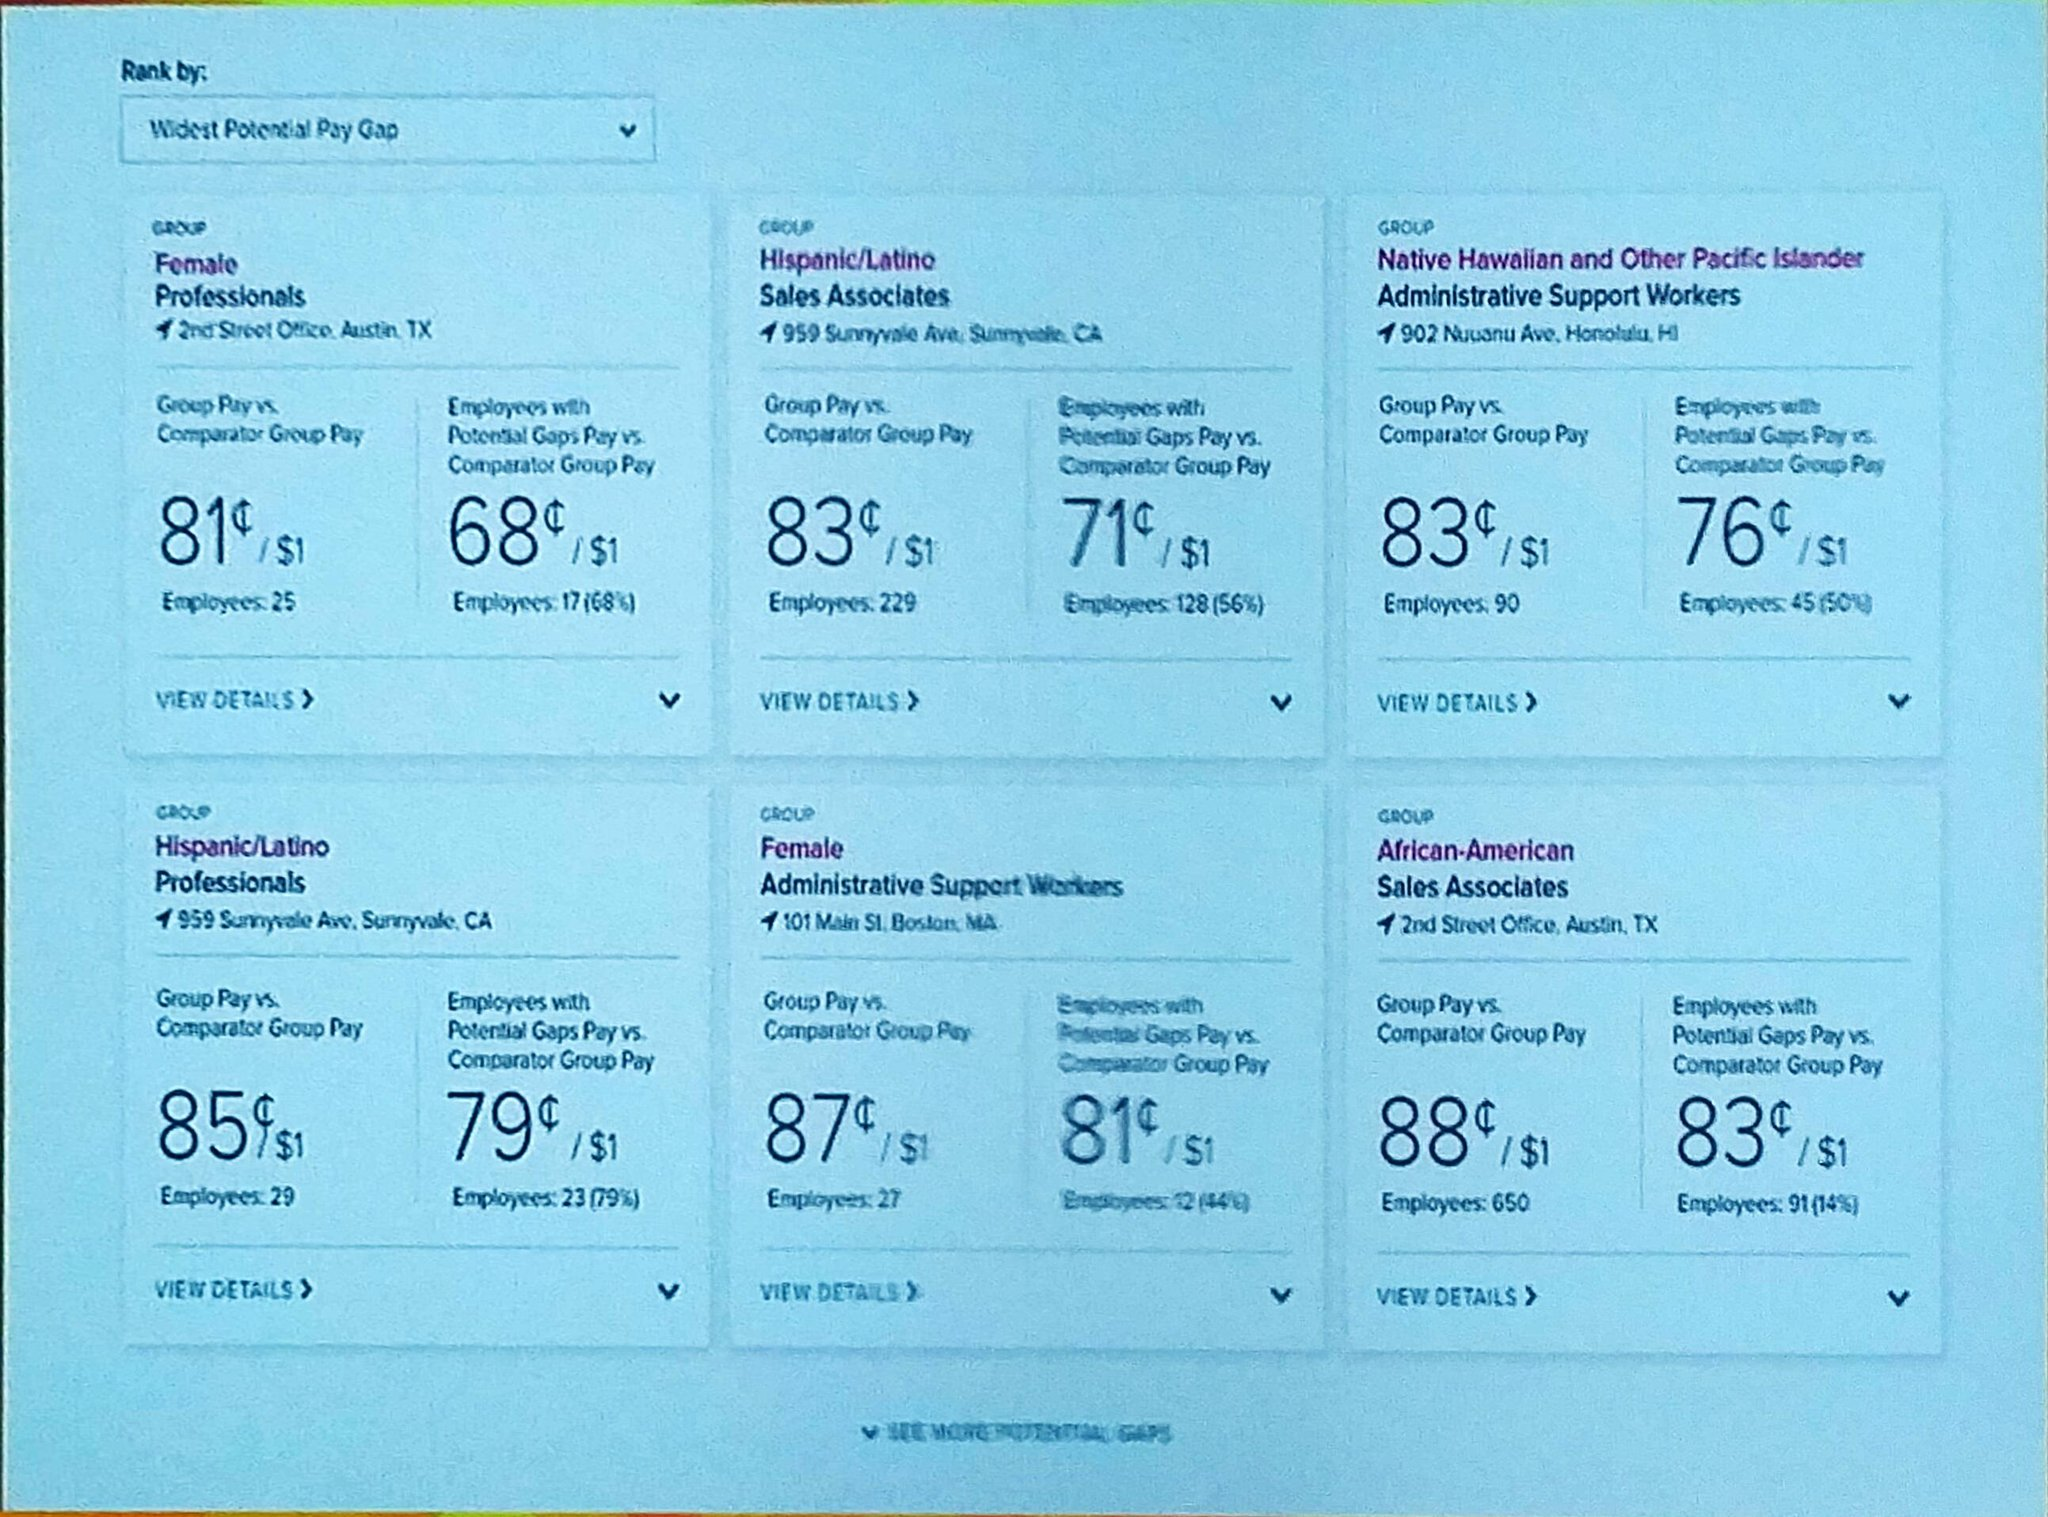 Looking @ADP Equity Explorer - Great example for the power of #BigData #ADPMOTM https://t.co/PaWpL4FksG